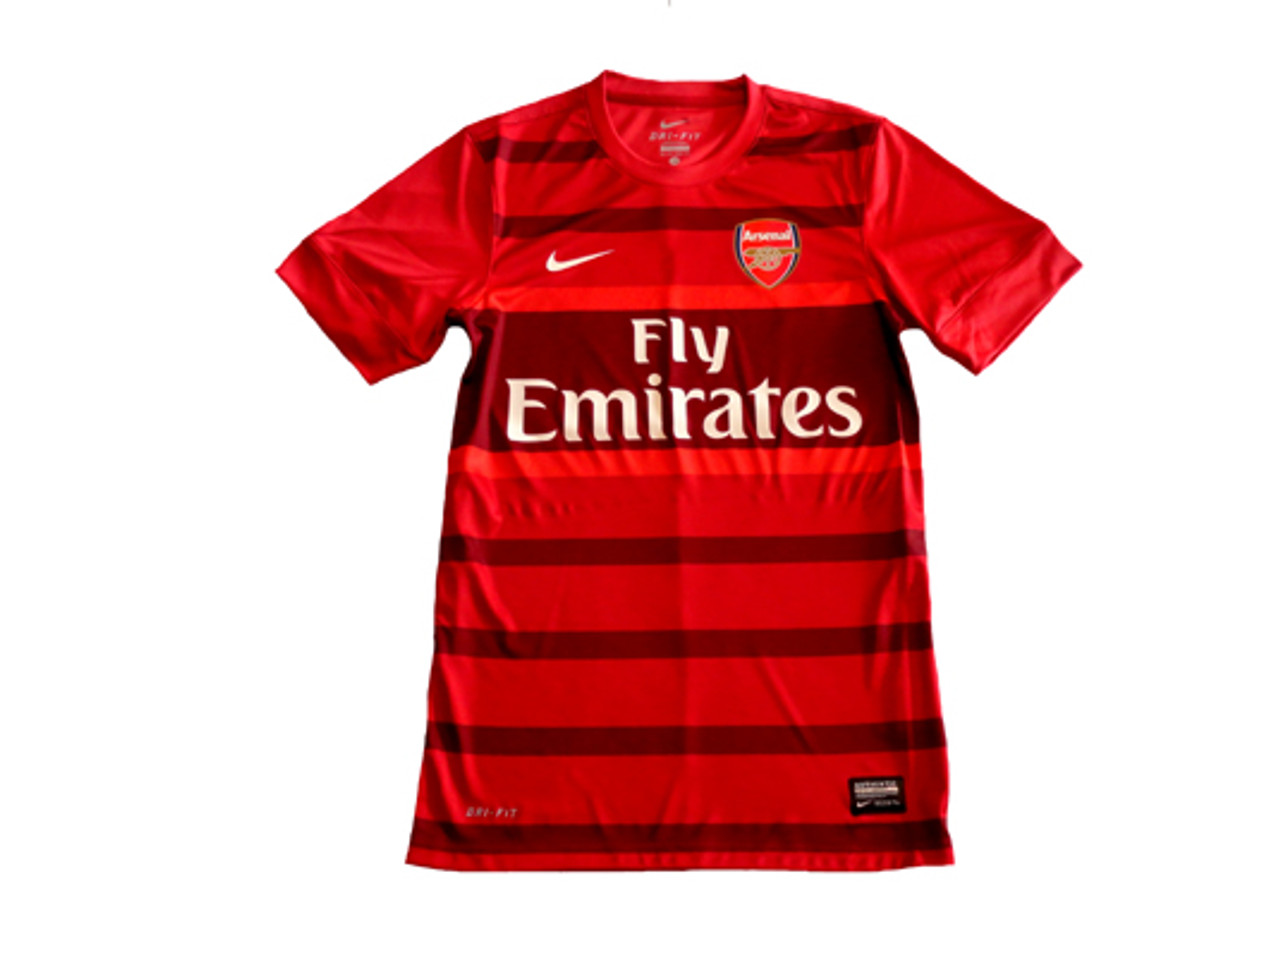 reputable site 3ef13 36a3e NIKE ARSENAL 2013 HOME TRAINING JERSEY